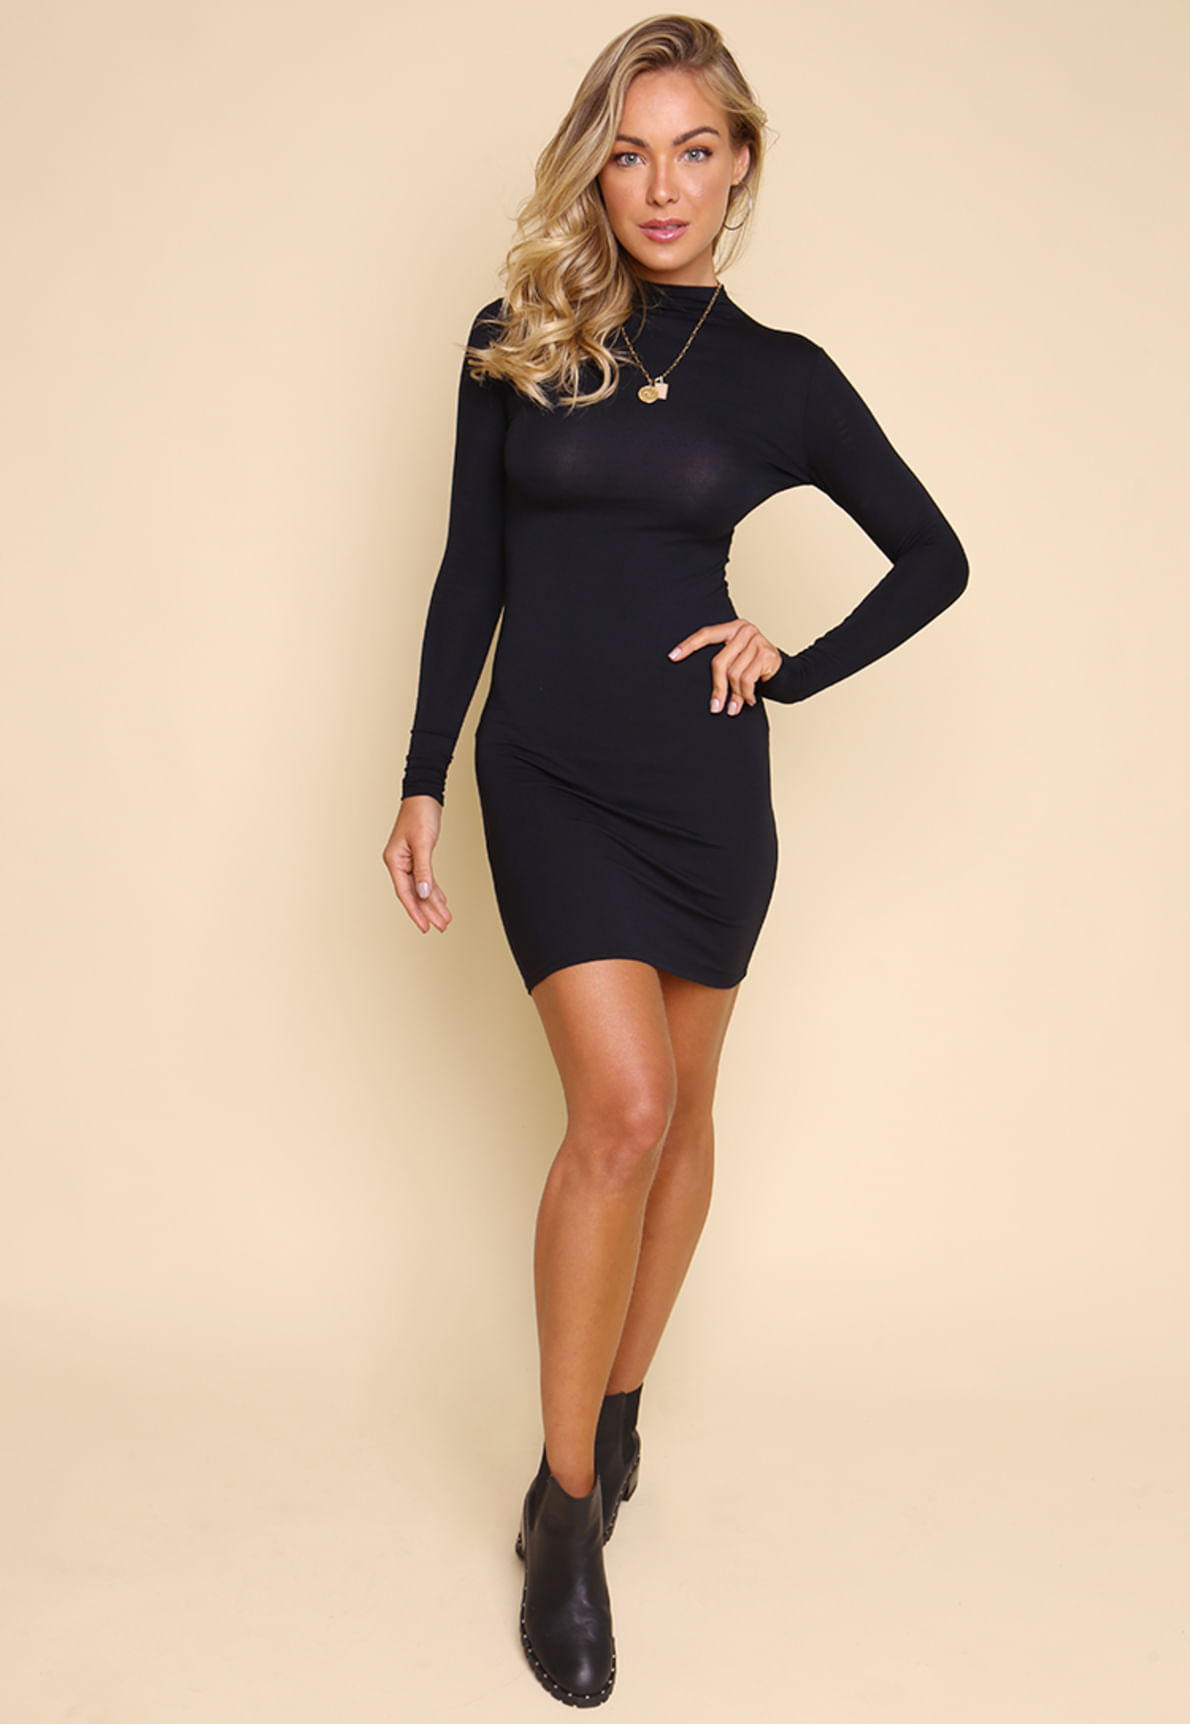 30677-vestido-preto-little-black-dress-mundo-lolita-01